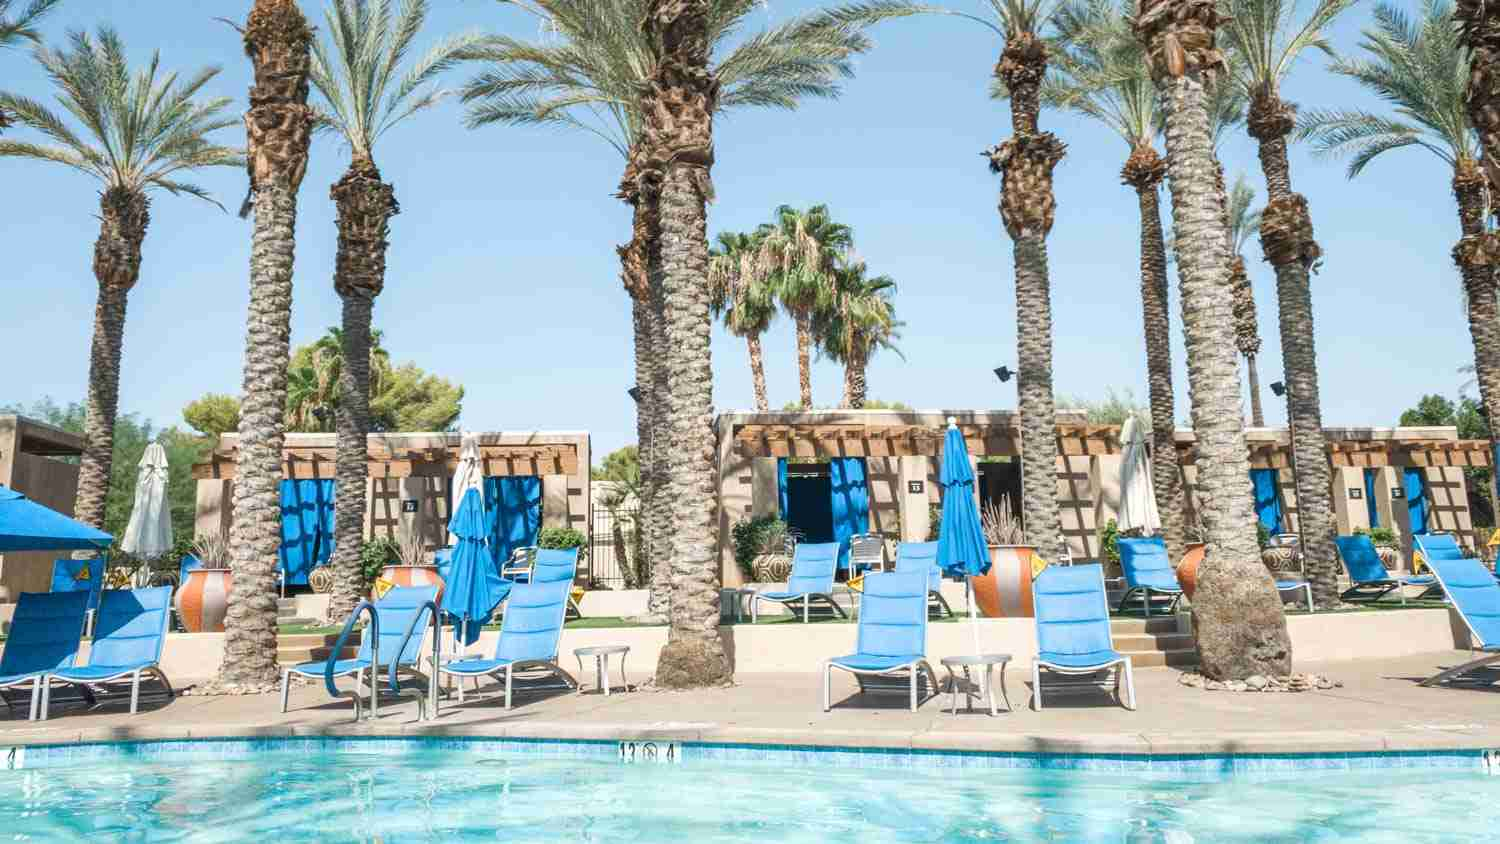 Pool, lounge chairs, and cabanas at Palm Springs resort